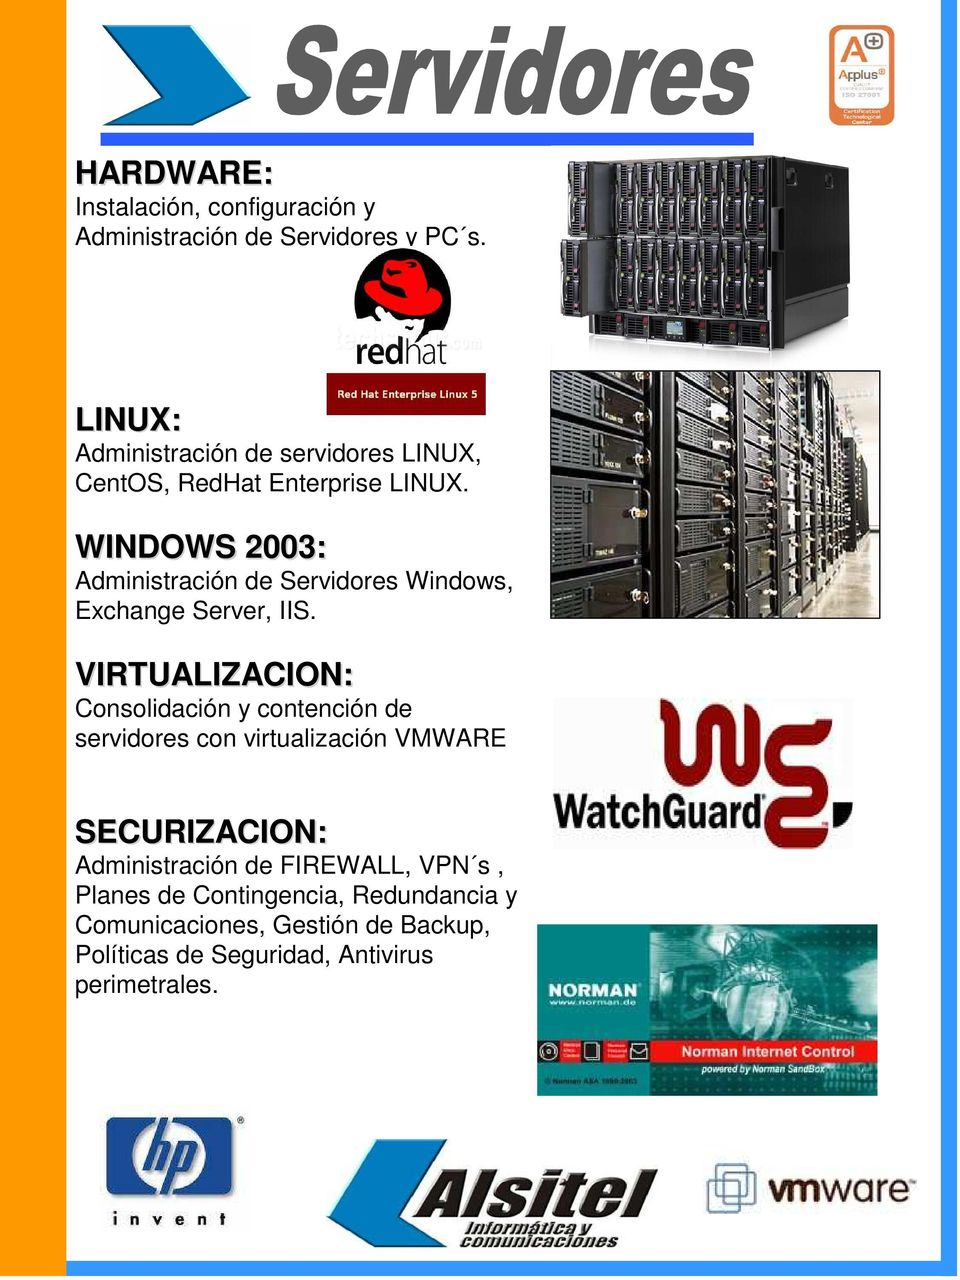 WINDOWS 2003: Administración de Servidores Windows, Exchange Server, IIS.